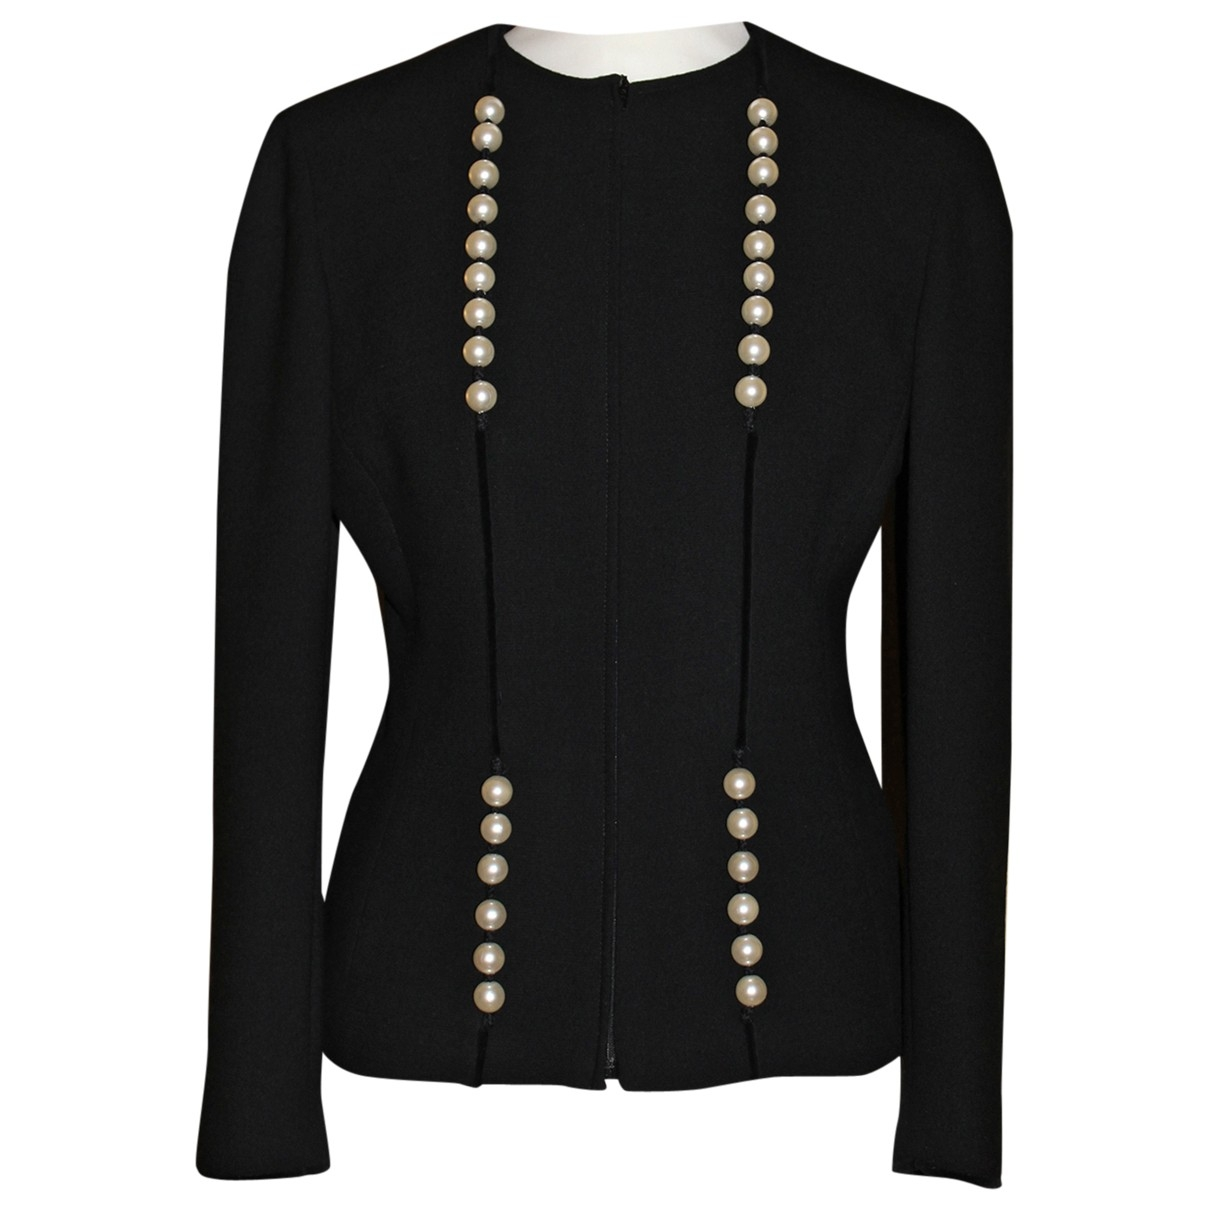 Valentino Garavani \N Black Wool jacket for Women 38 IT